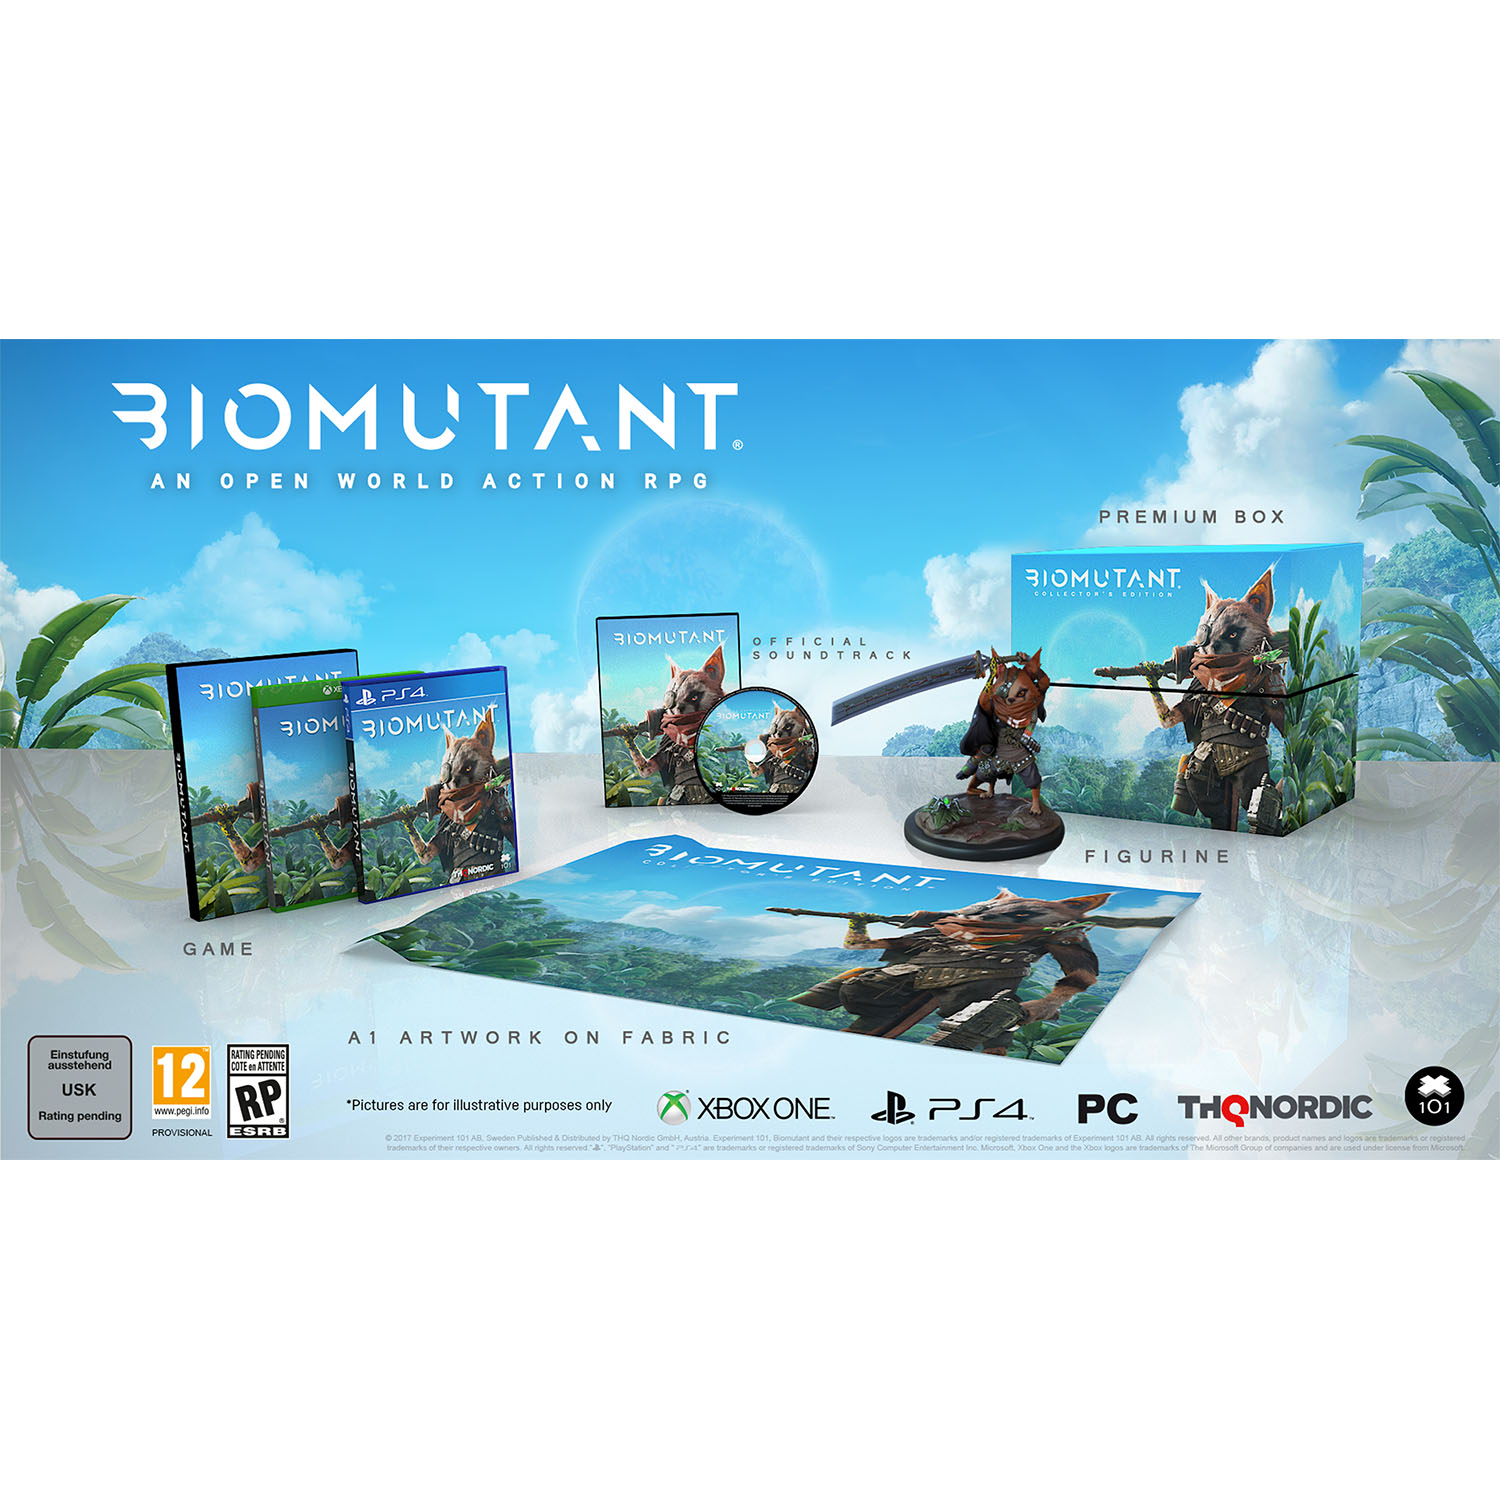 Biomutant Collectors Edition, THQ-Nordic, Xbox One, 811994021243 ONLINE